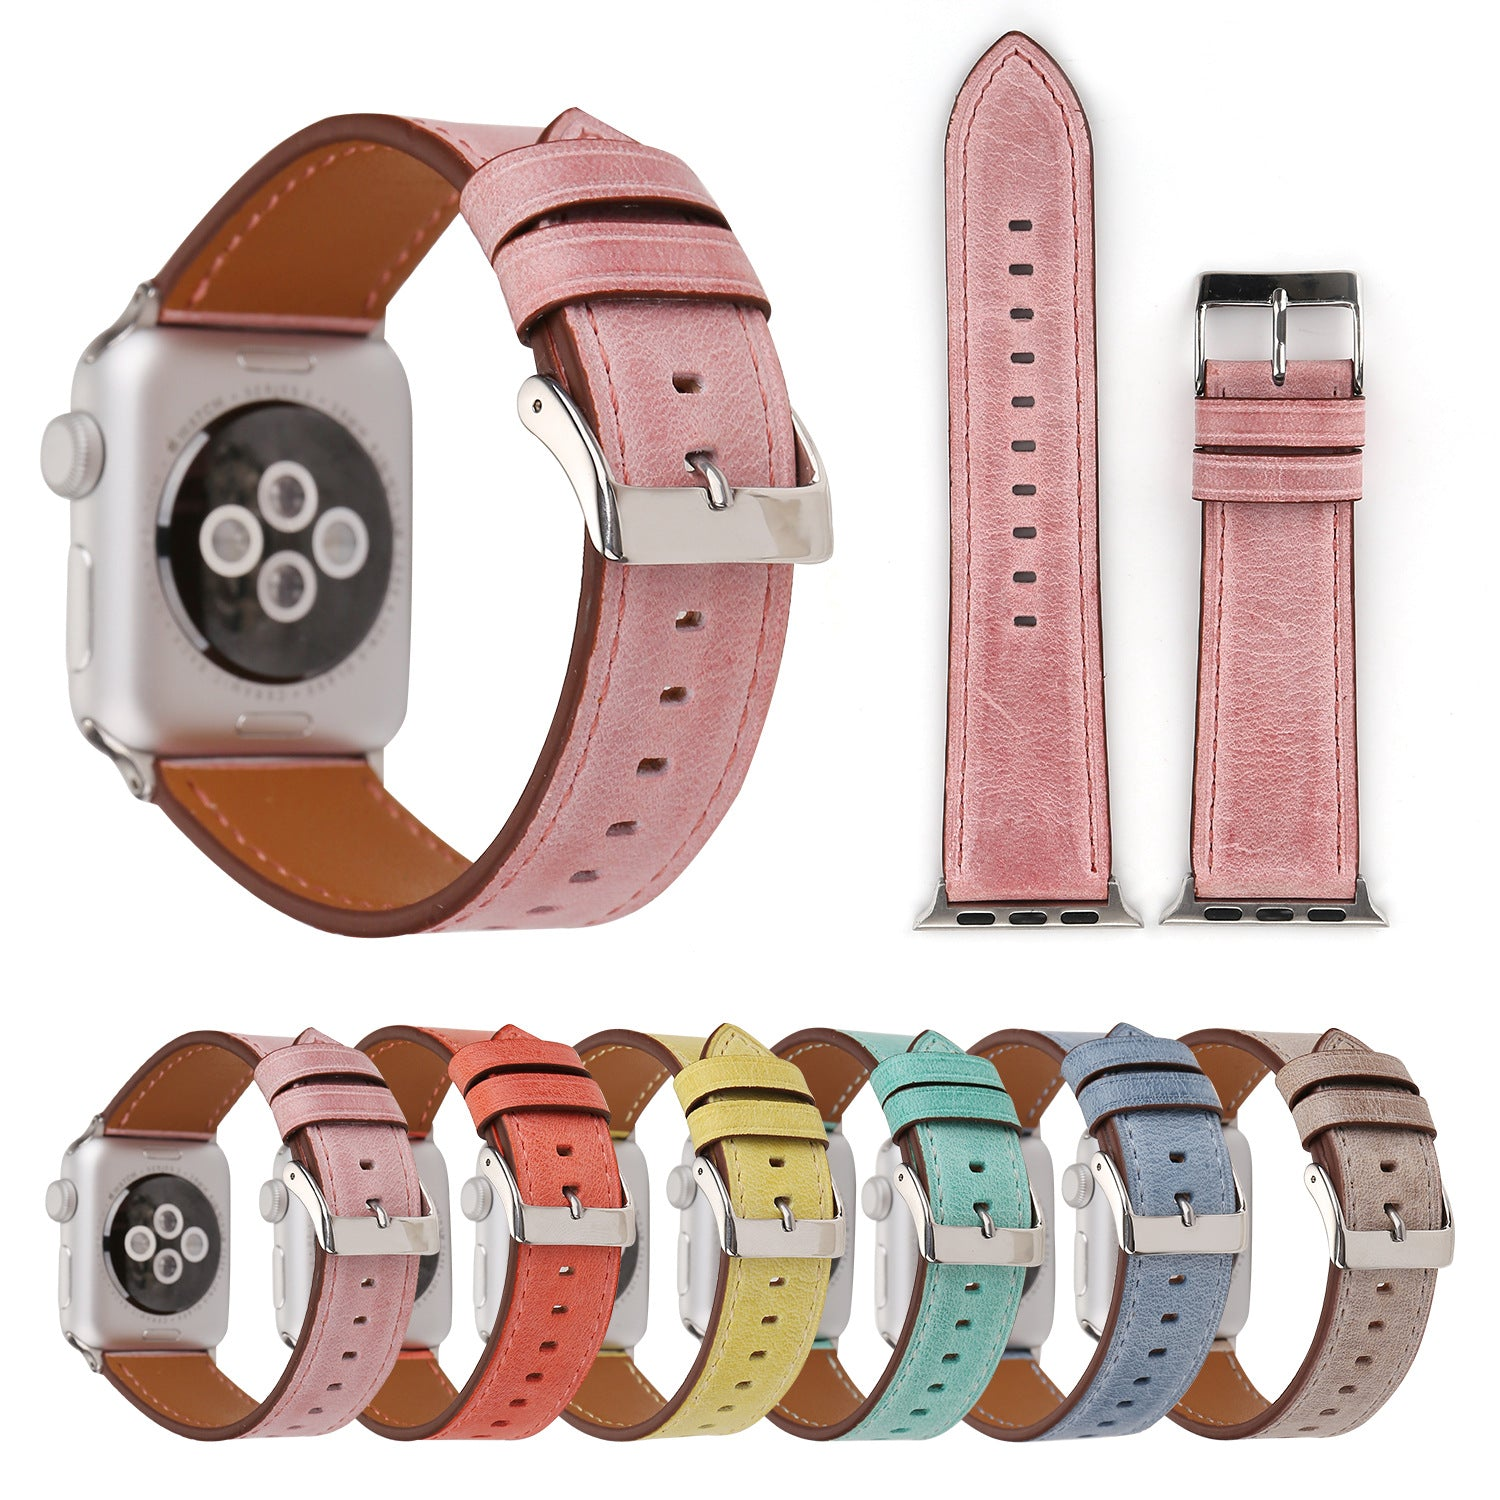 Fashion 6 Jelly Colors Strap For Apple Watch Series 1,2,3,4 -  - TomorrowSummer